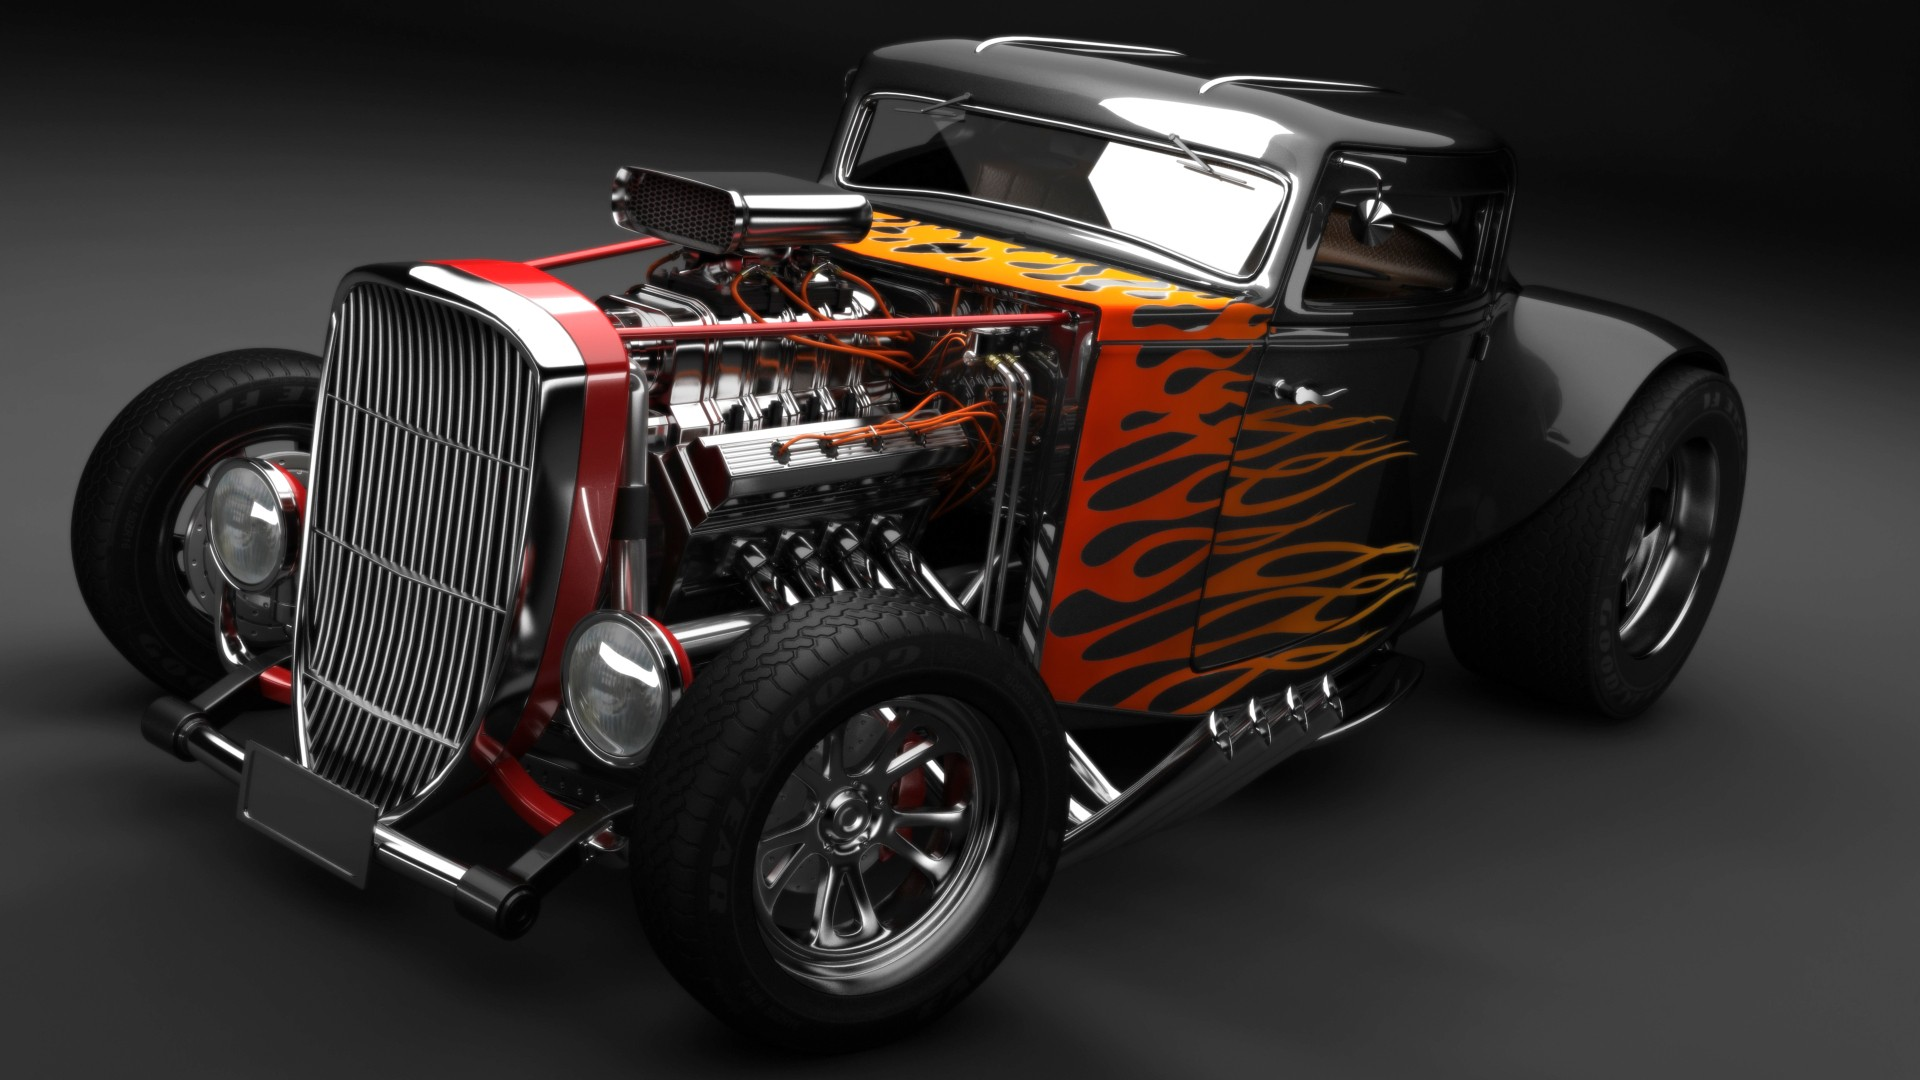 Hot Rod Computer Wallpapers Desktop Backgrounds 1920x1080 ID 1920x1080